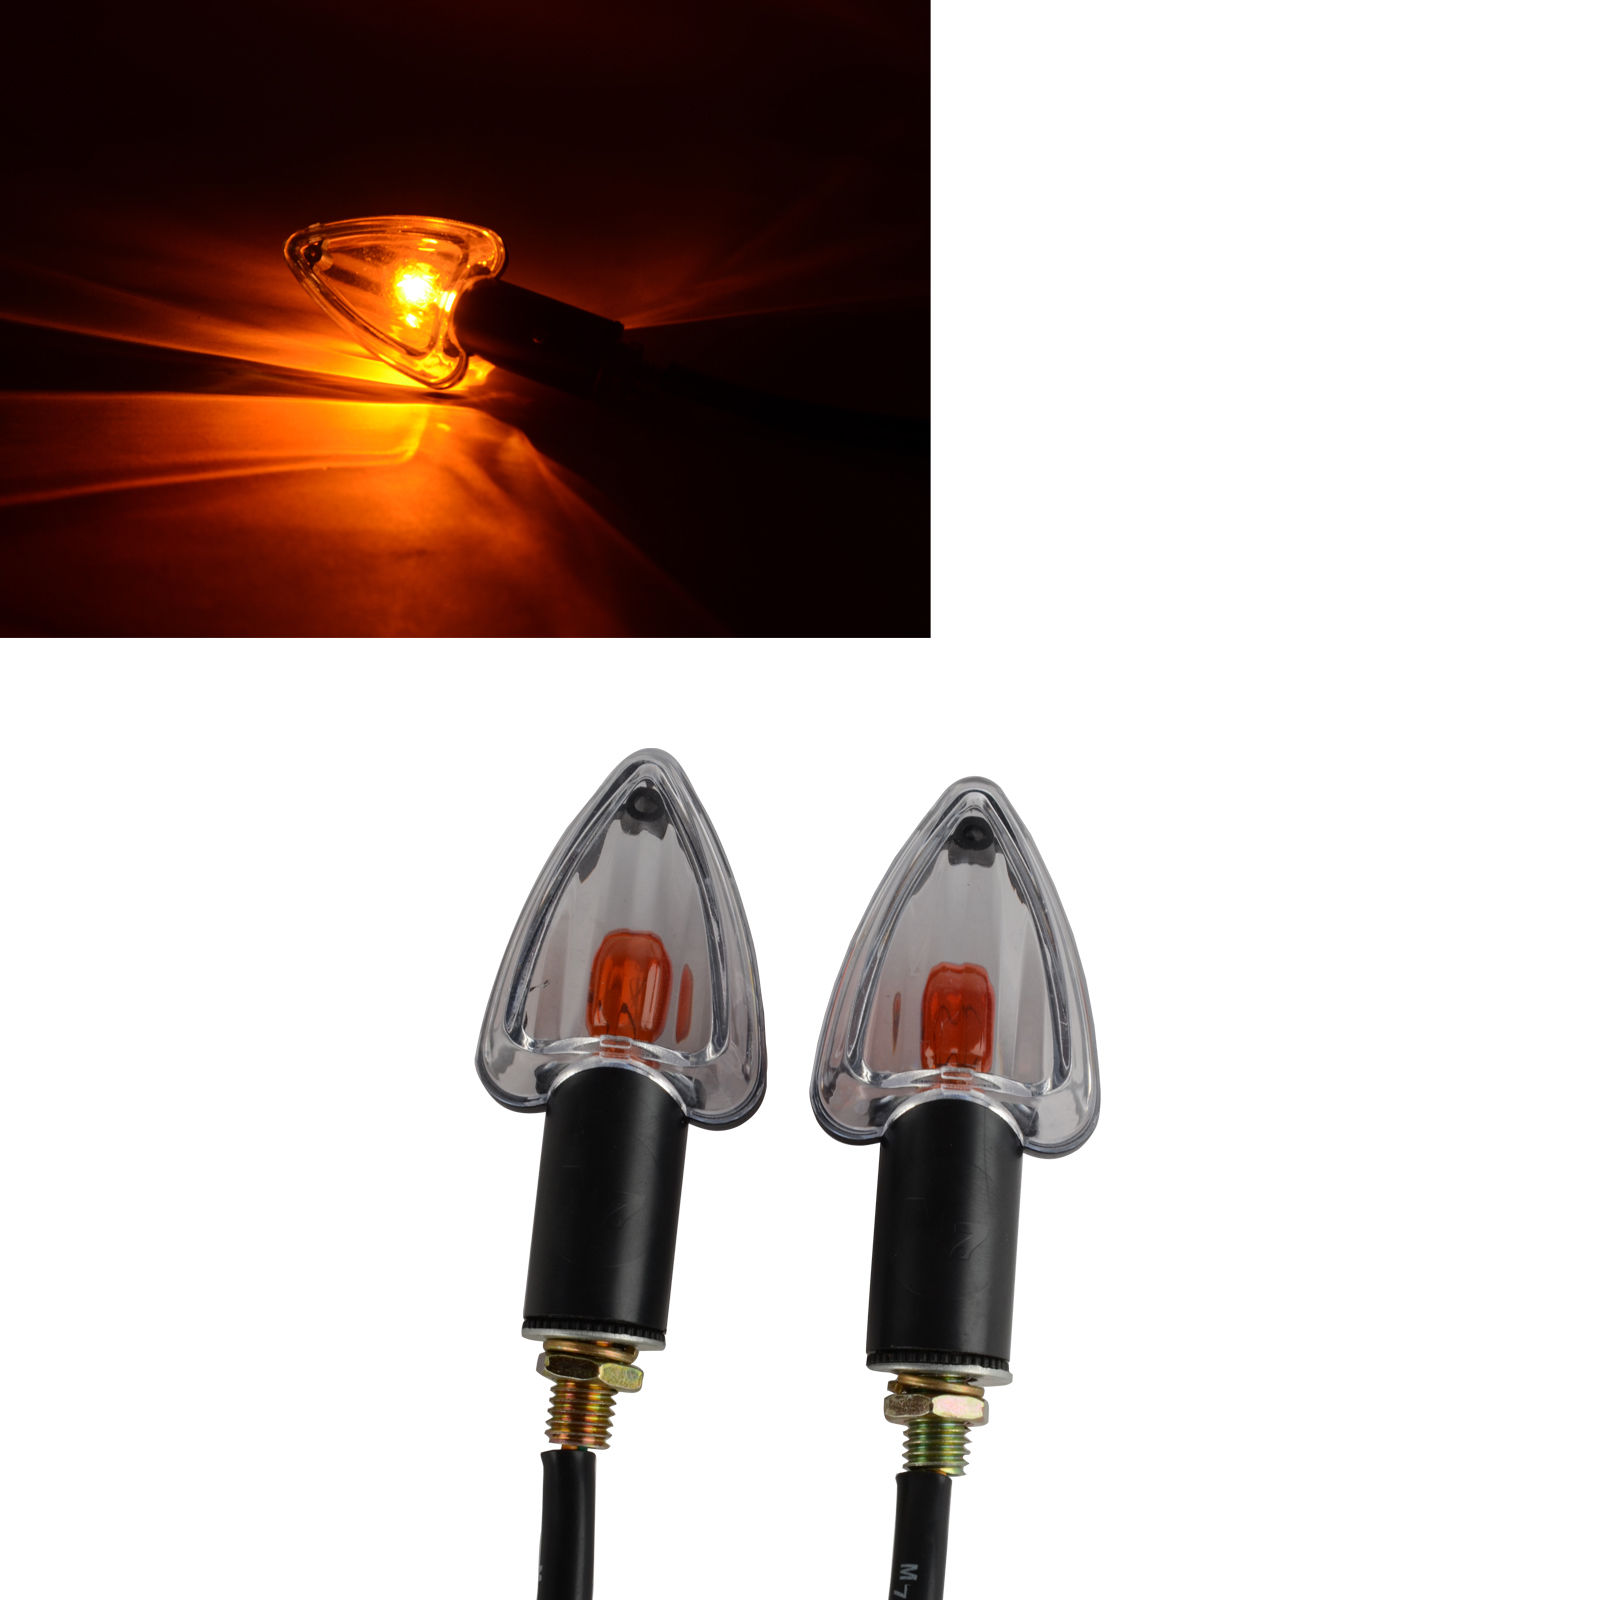 2x Amber Light Motorcycle Turn Signal Indicator Light Lamp Bulb